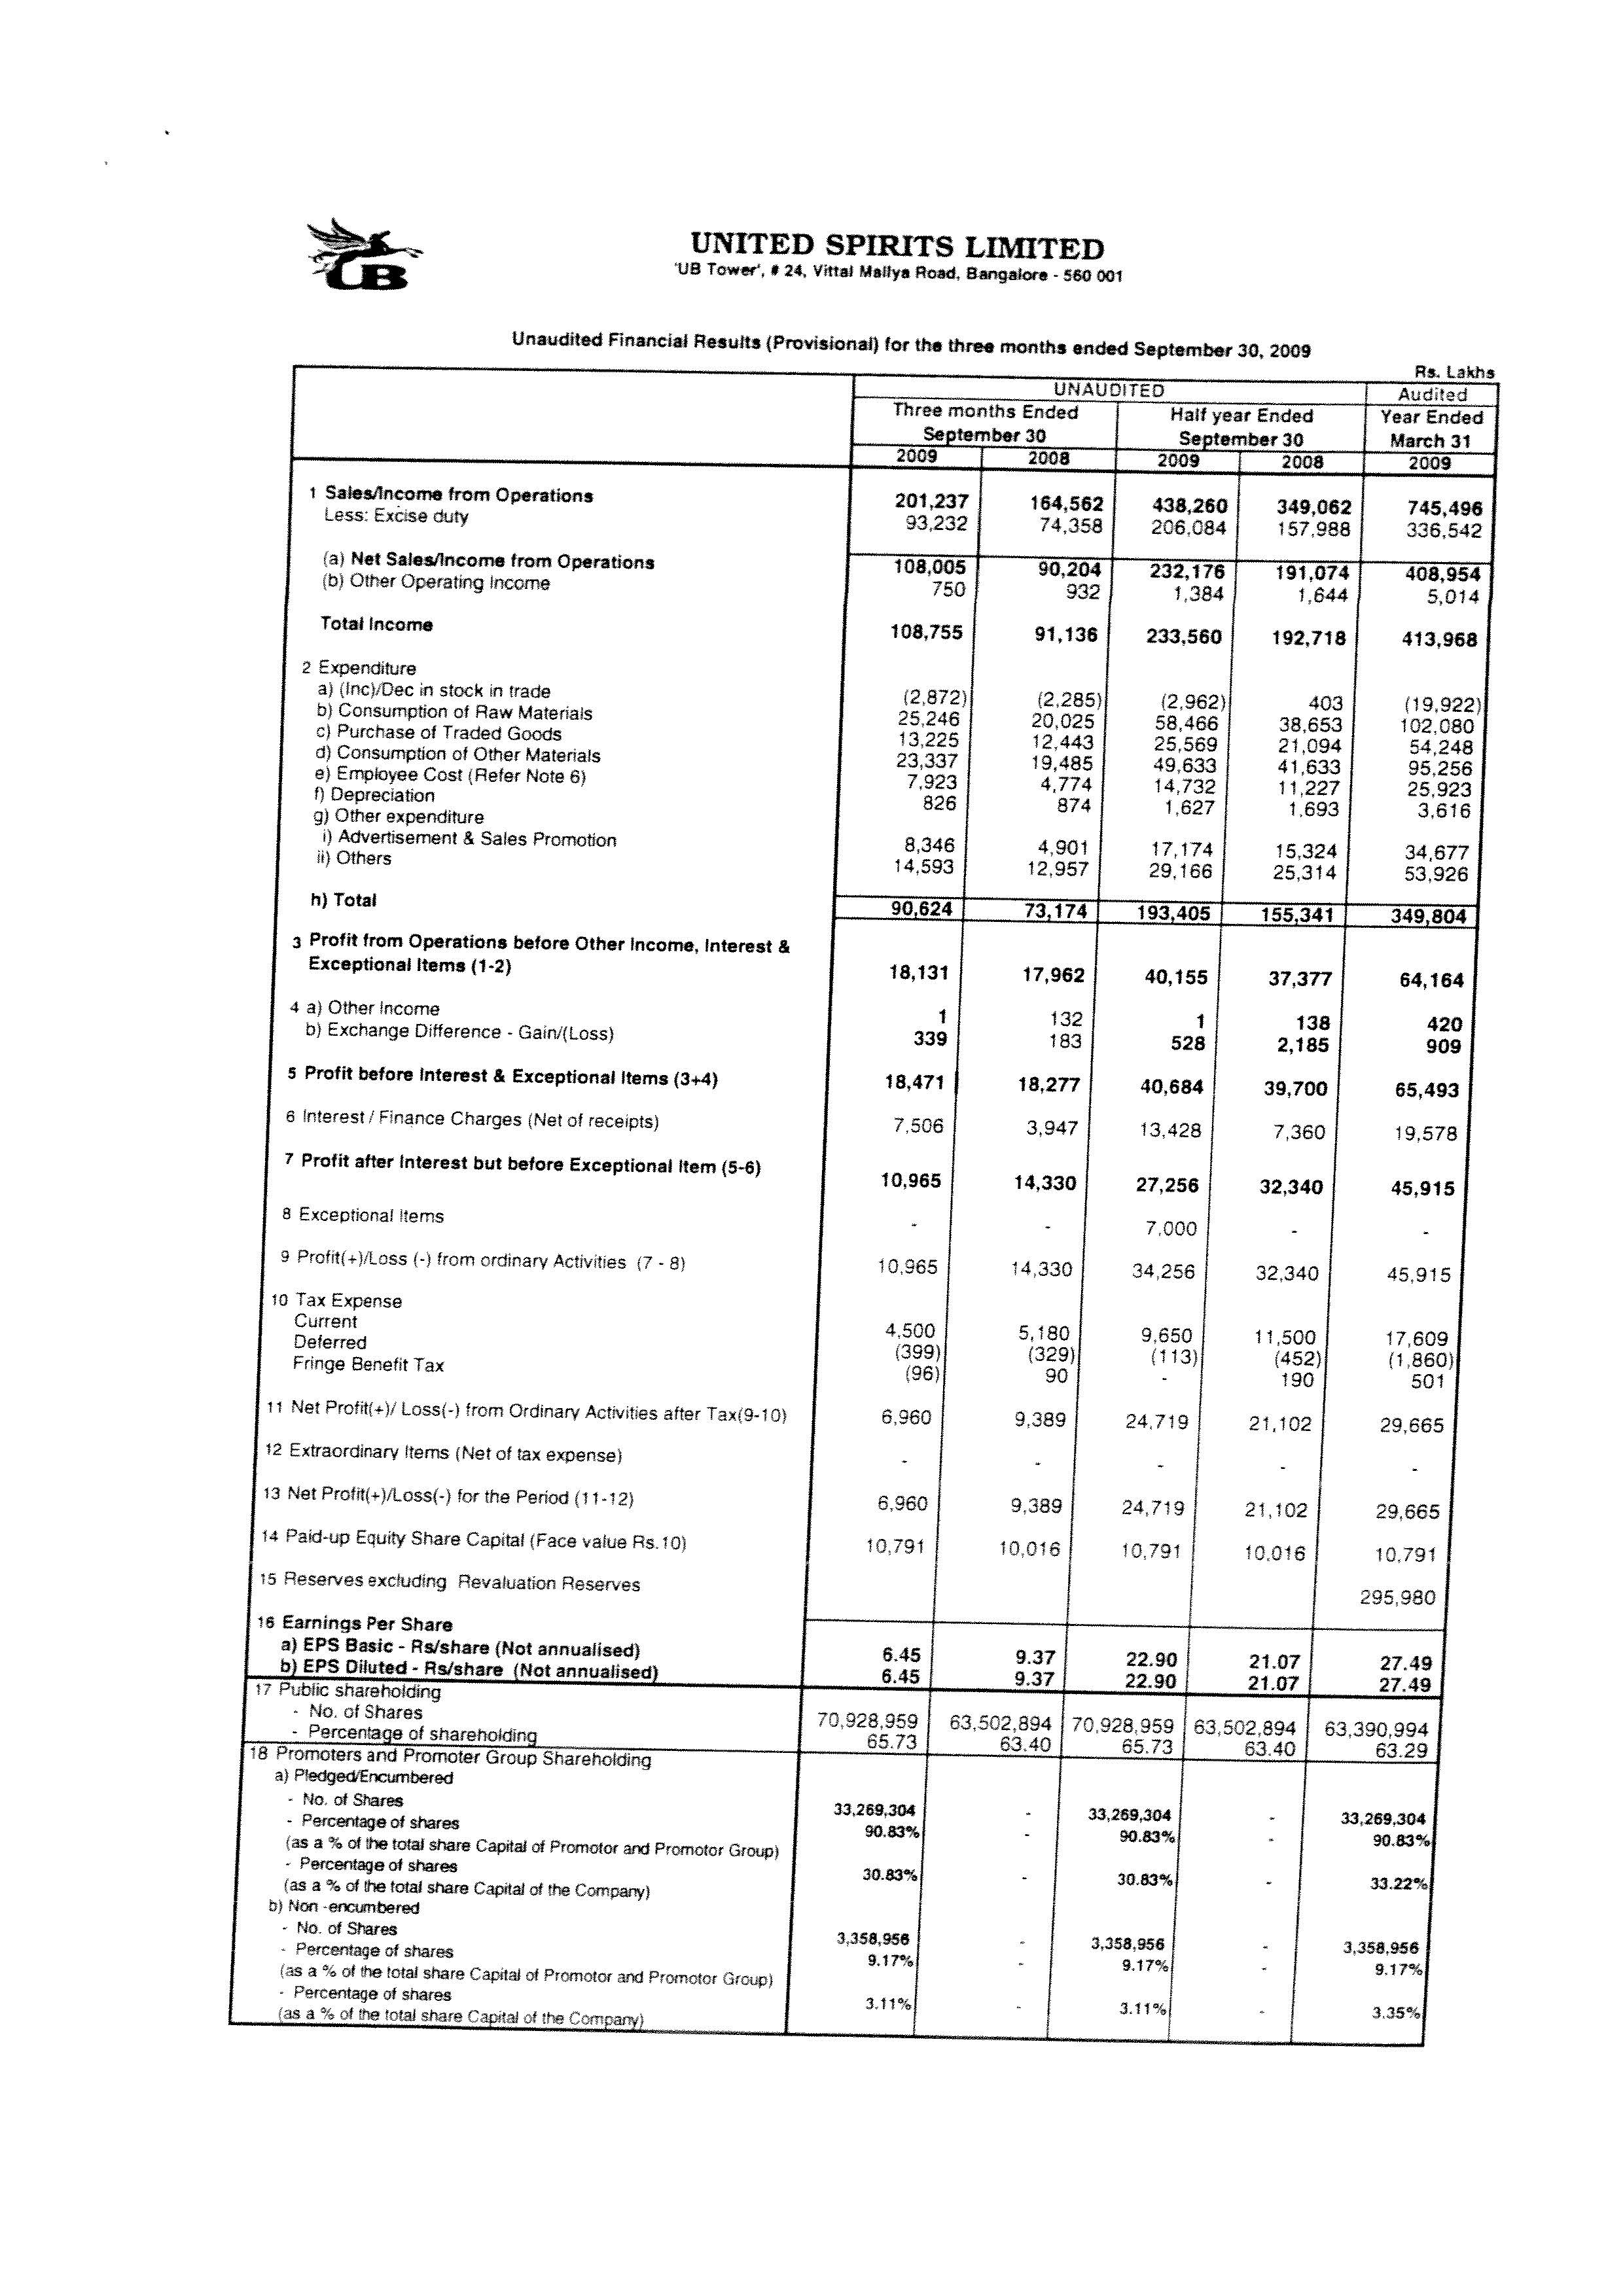 Unaudited Financial Results (Provisional) for the six months ended September 30, 2009